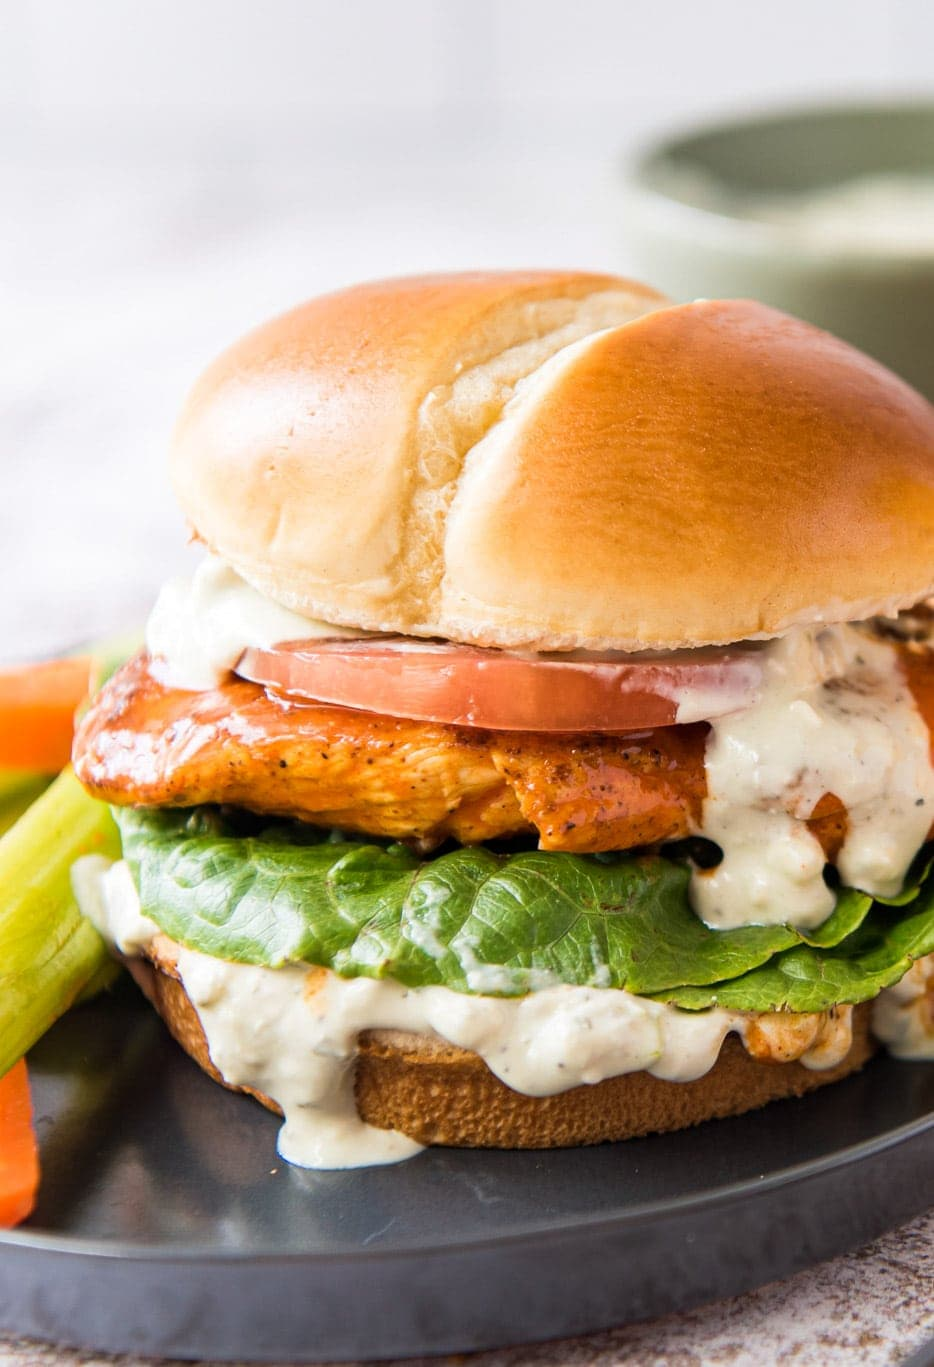 A chicken sandwich with a creamy white sauce, lettuce, a chicken breast with buffalo sauce, and a slice of tomato, on a bun.